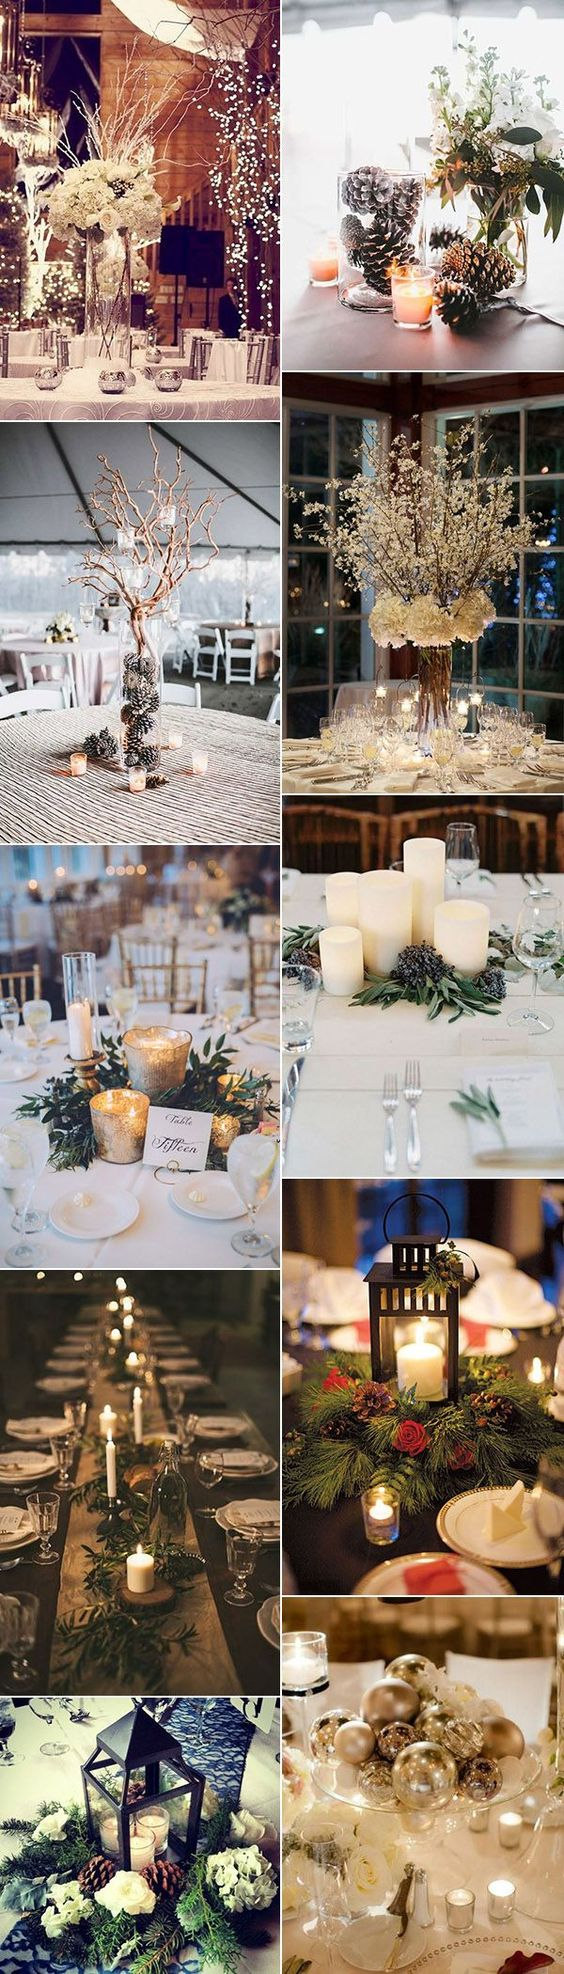 wedding wedding ideas